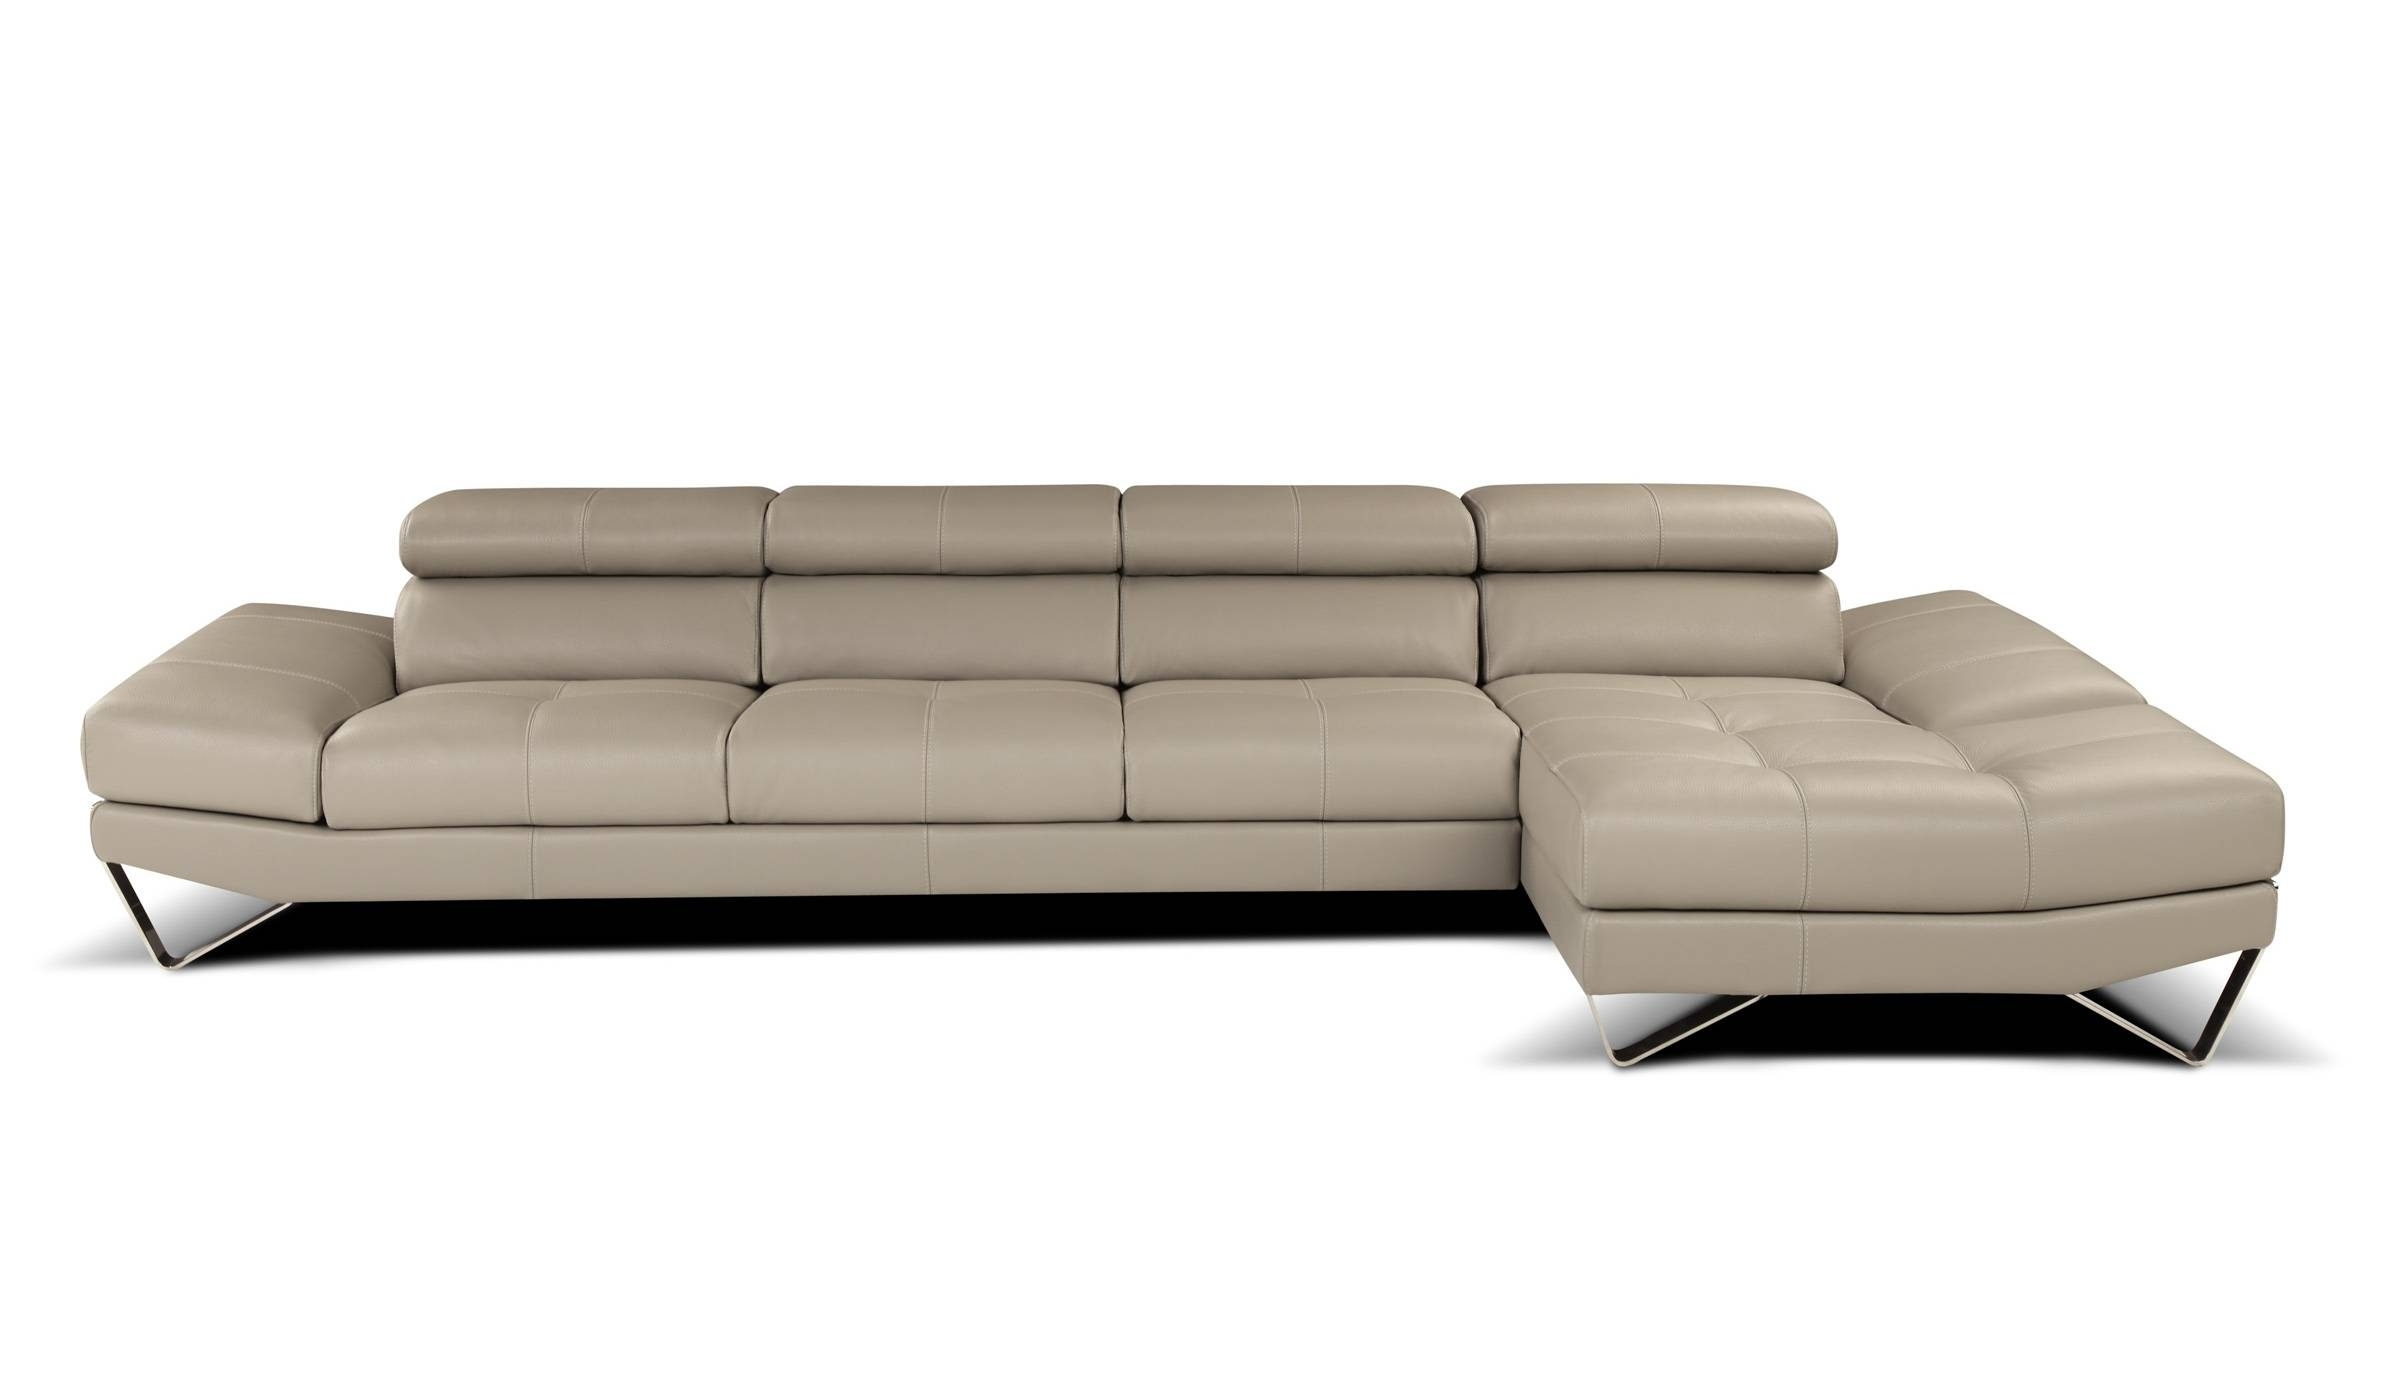 2019 Latest High End Leather Sectional Sofas